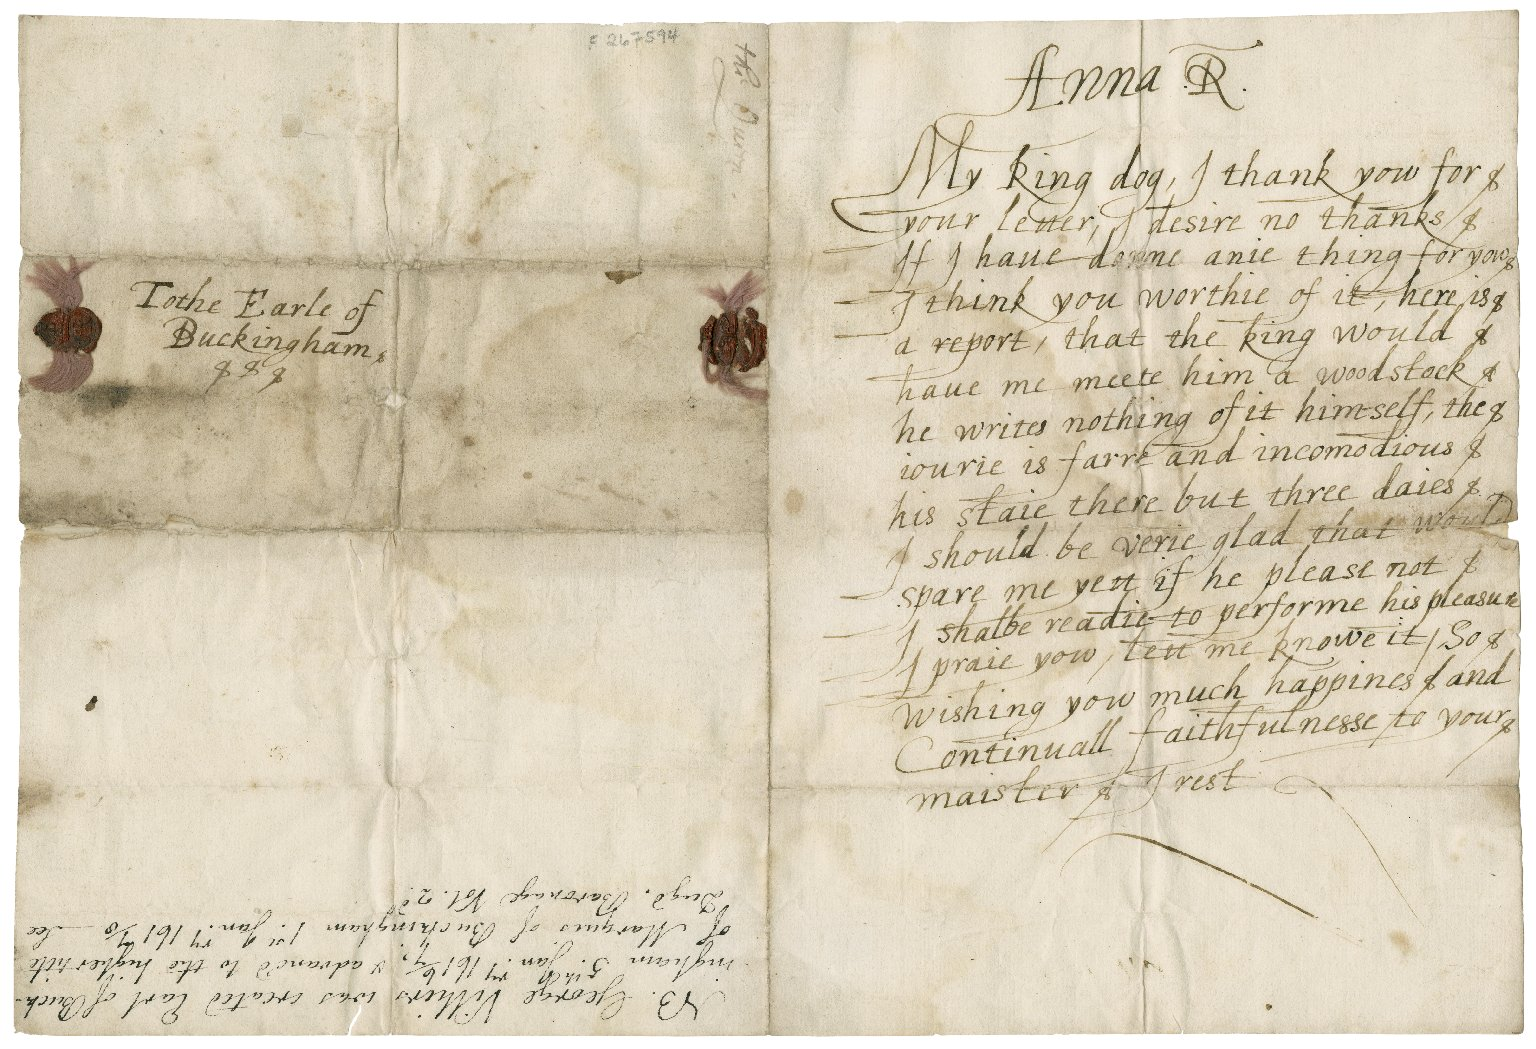 Letter from 1617 by Queen Anne (wife of James I) to George Villiers